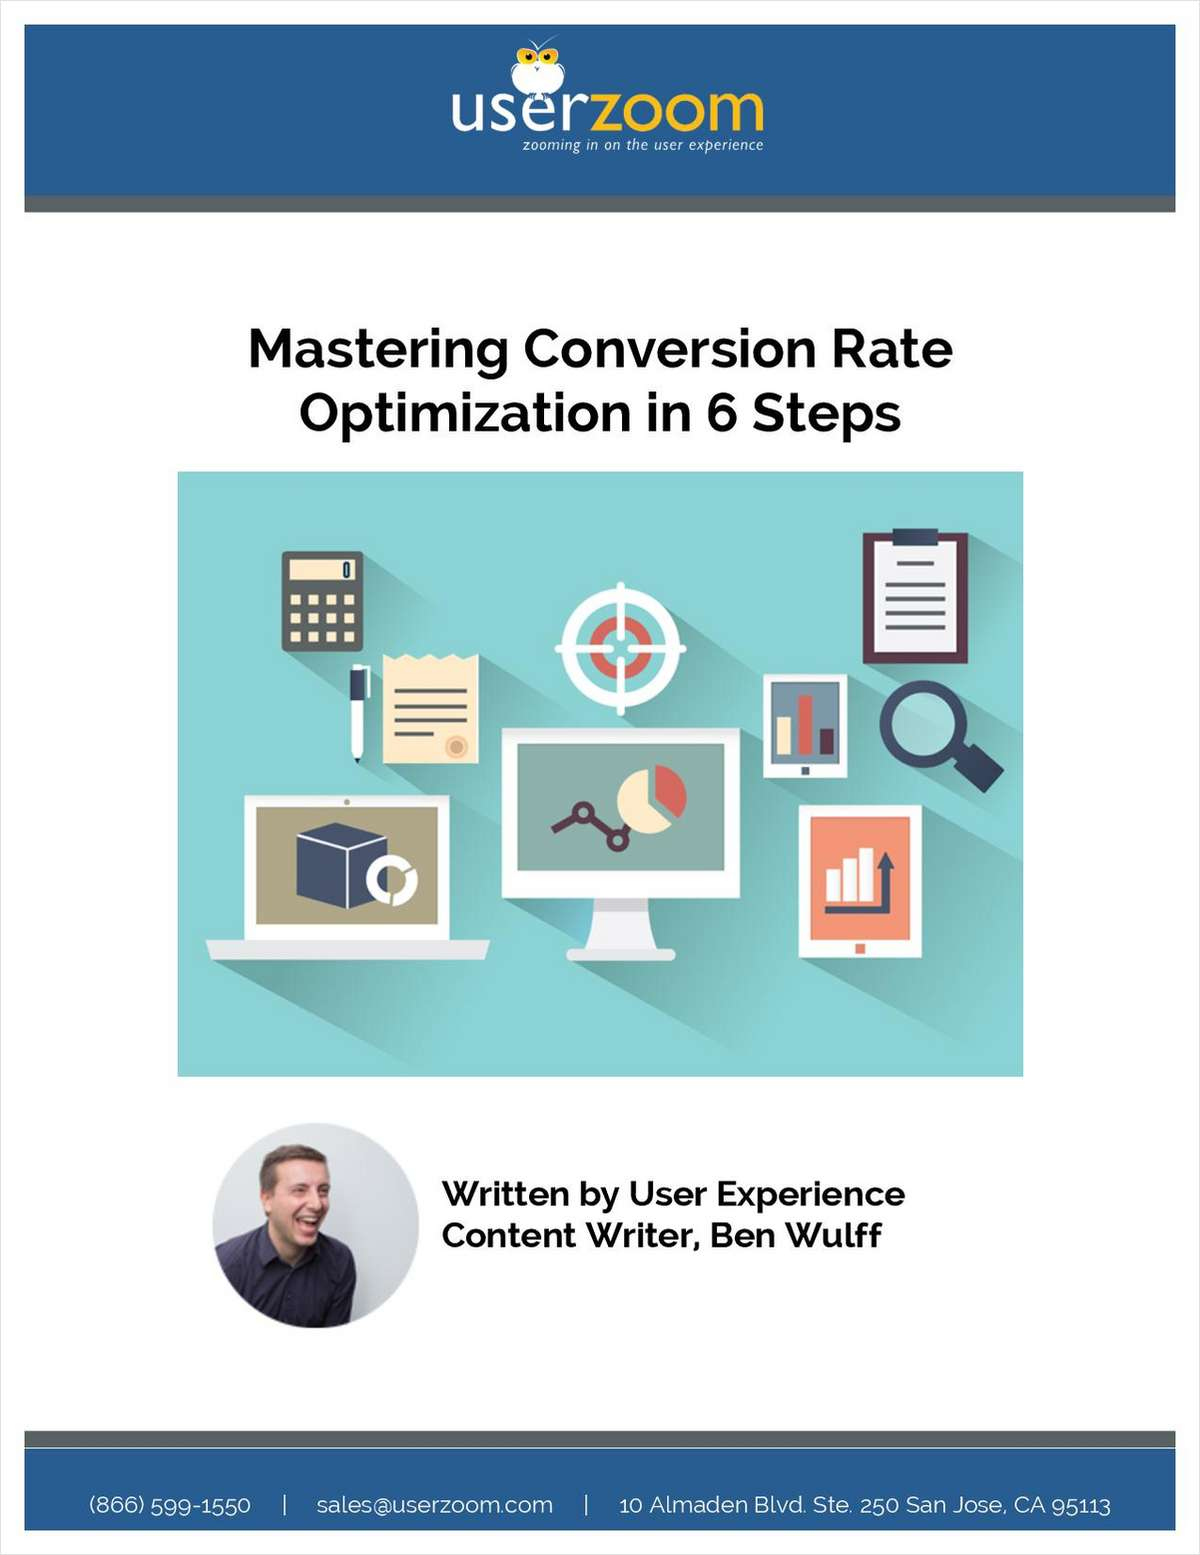 6 Quick Steps to Improve Conversion Rates